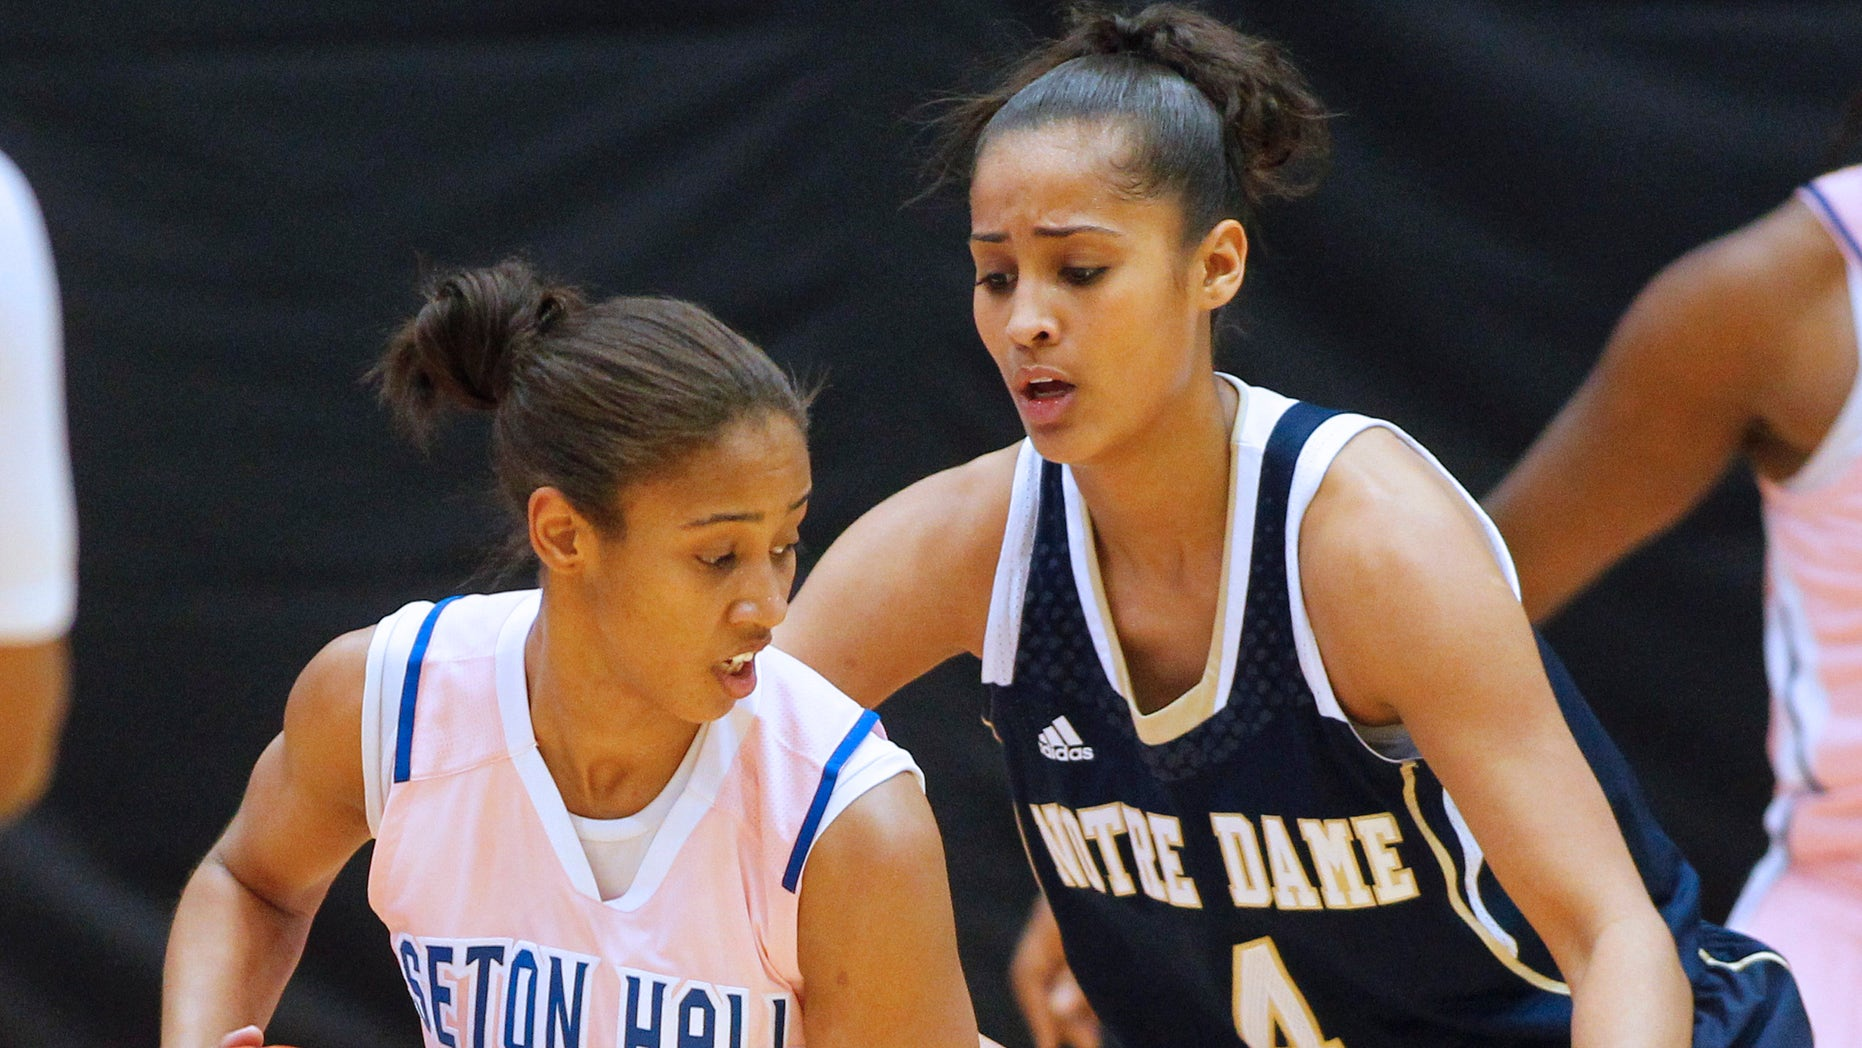 Seton Hall's Brittany Morris (2) attempts to get past Notre Dame's Skylar Diggins (4) during the second half of an NCAA college basketball game in South Orange, N.J. Saturday, Feb. 9, 2013. Notre Dame defeated Seton Hall 69-50. (AP Photo/Rich Schultz)